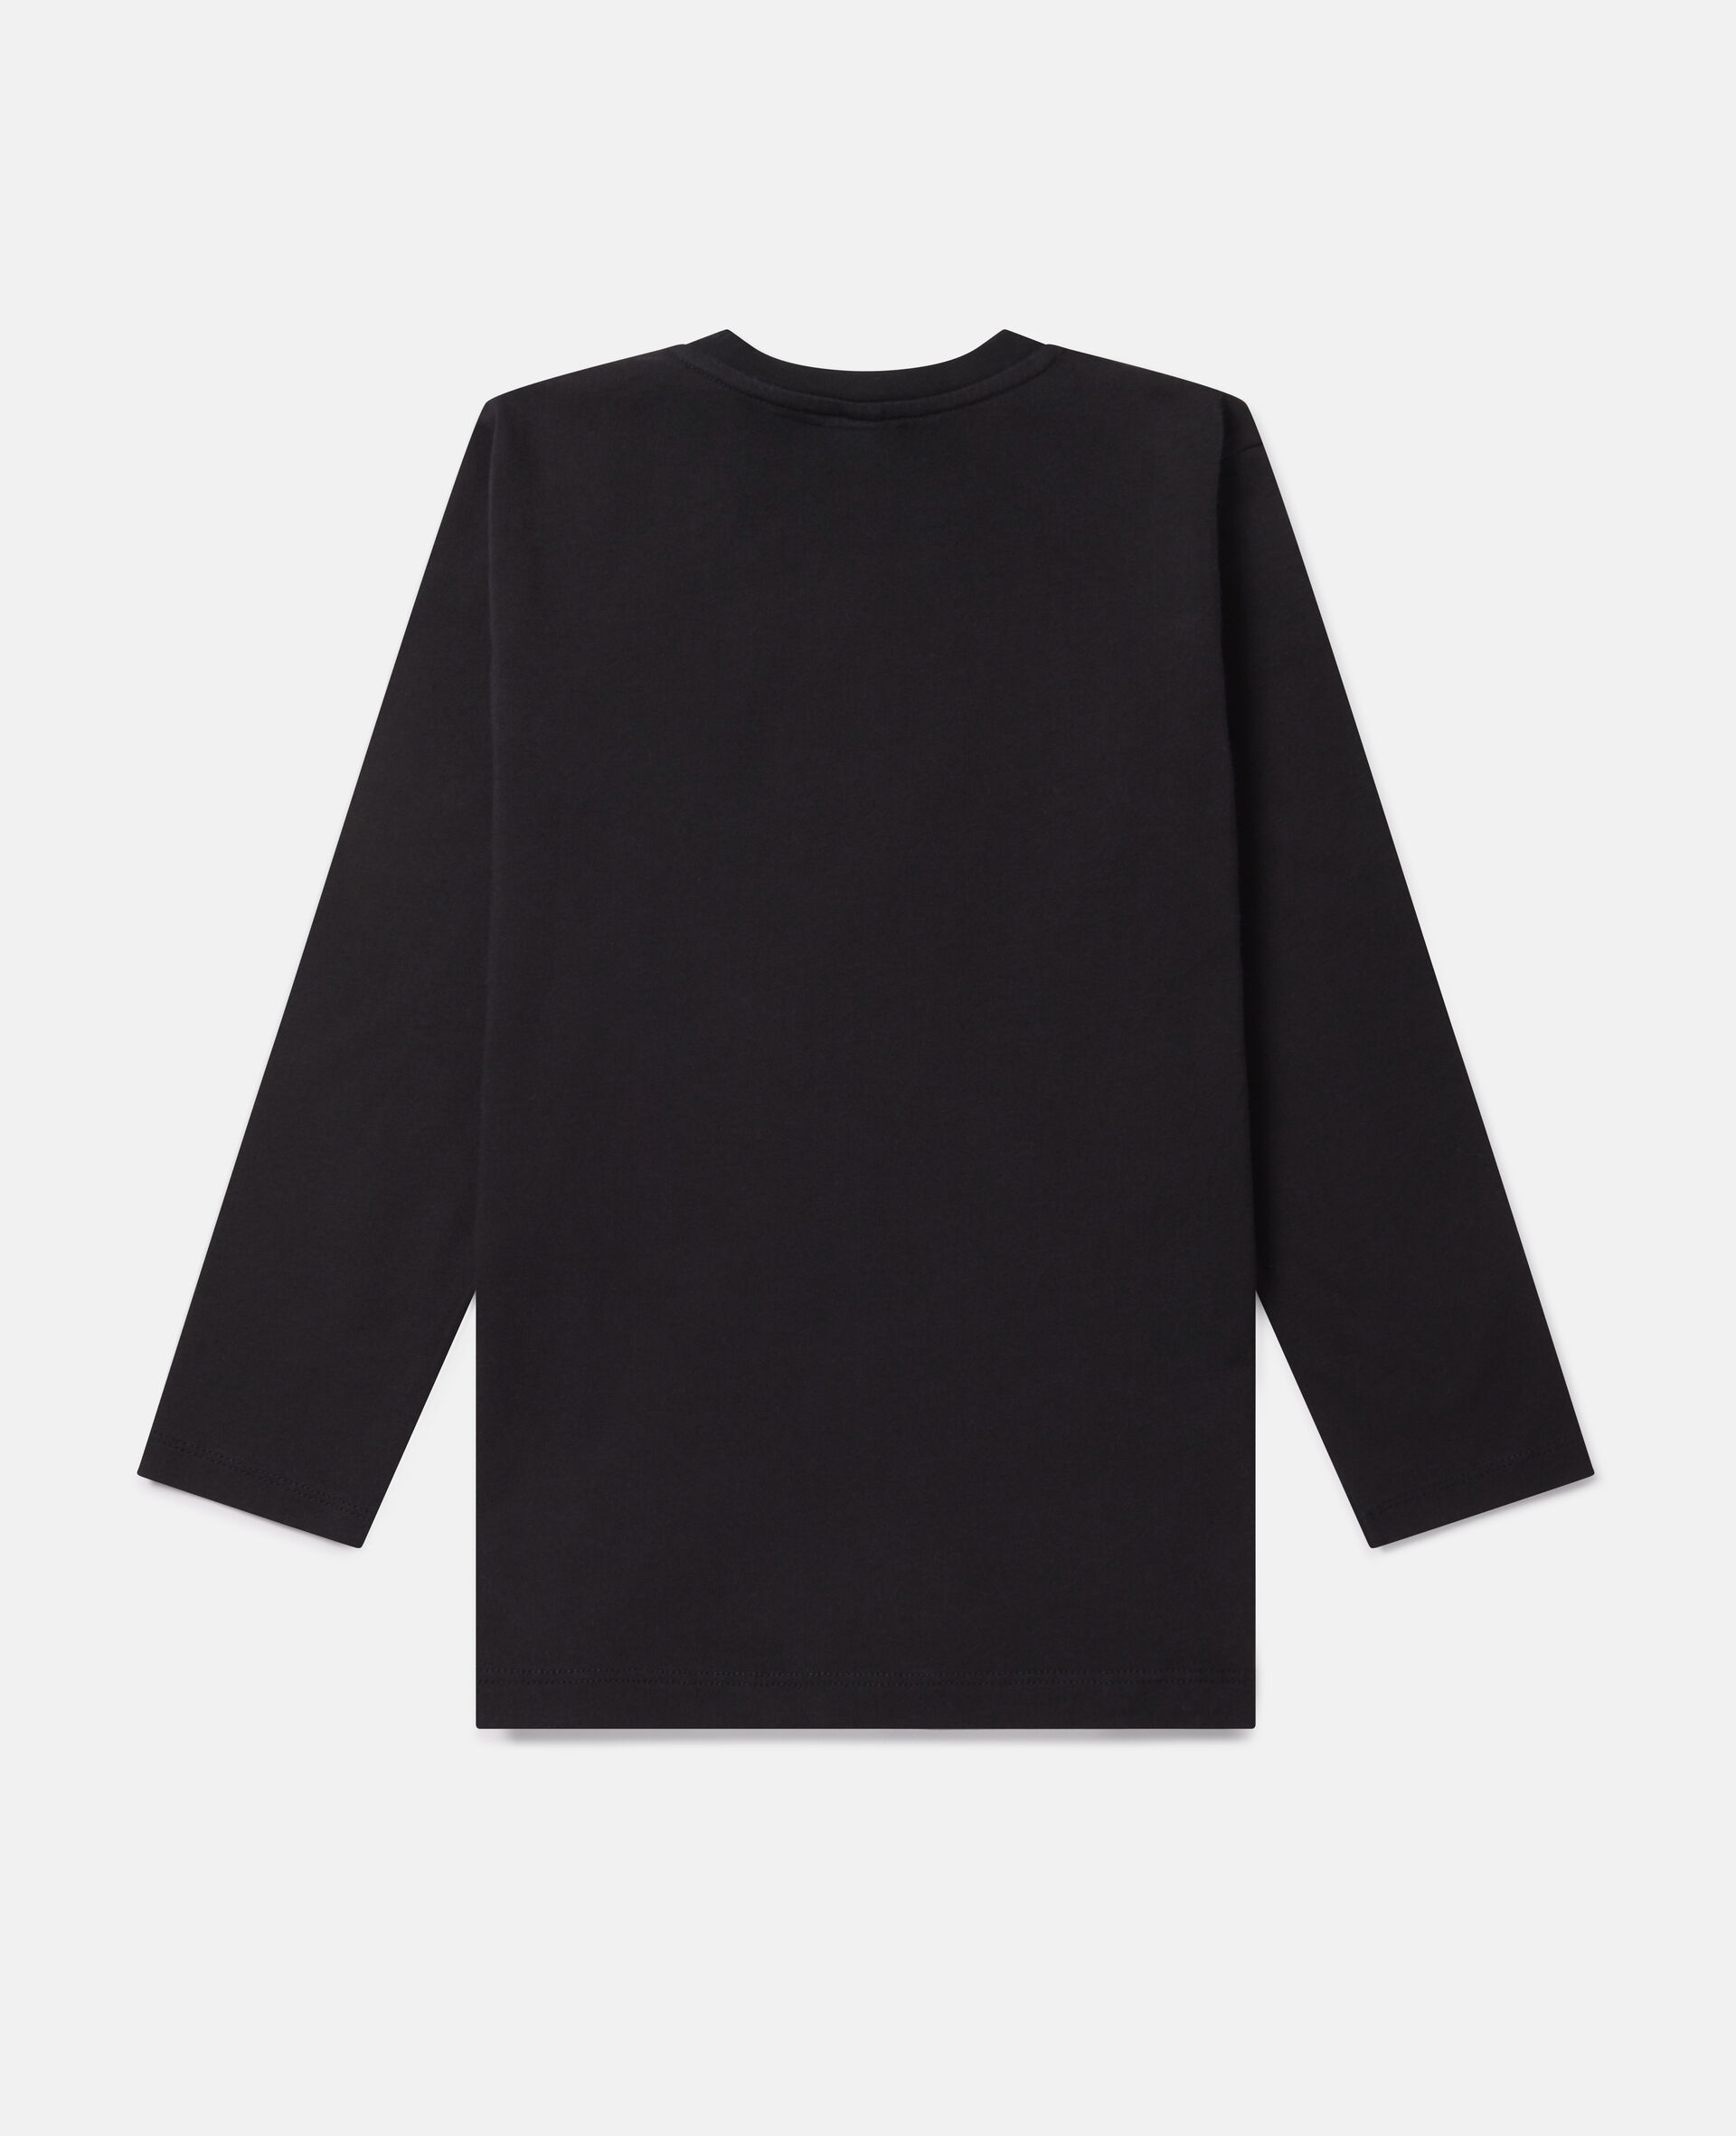 Spray Can Cotton Top-Black-large image number 3